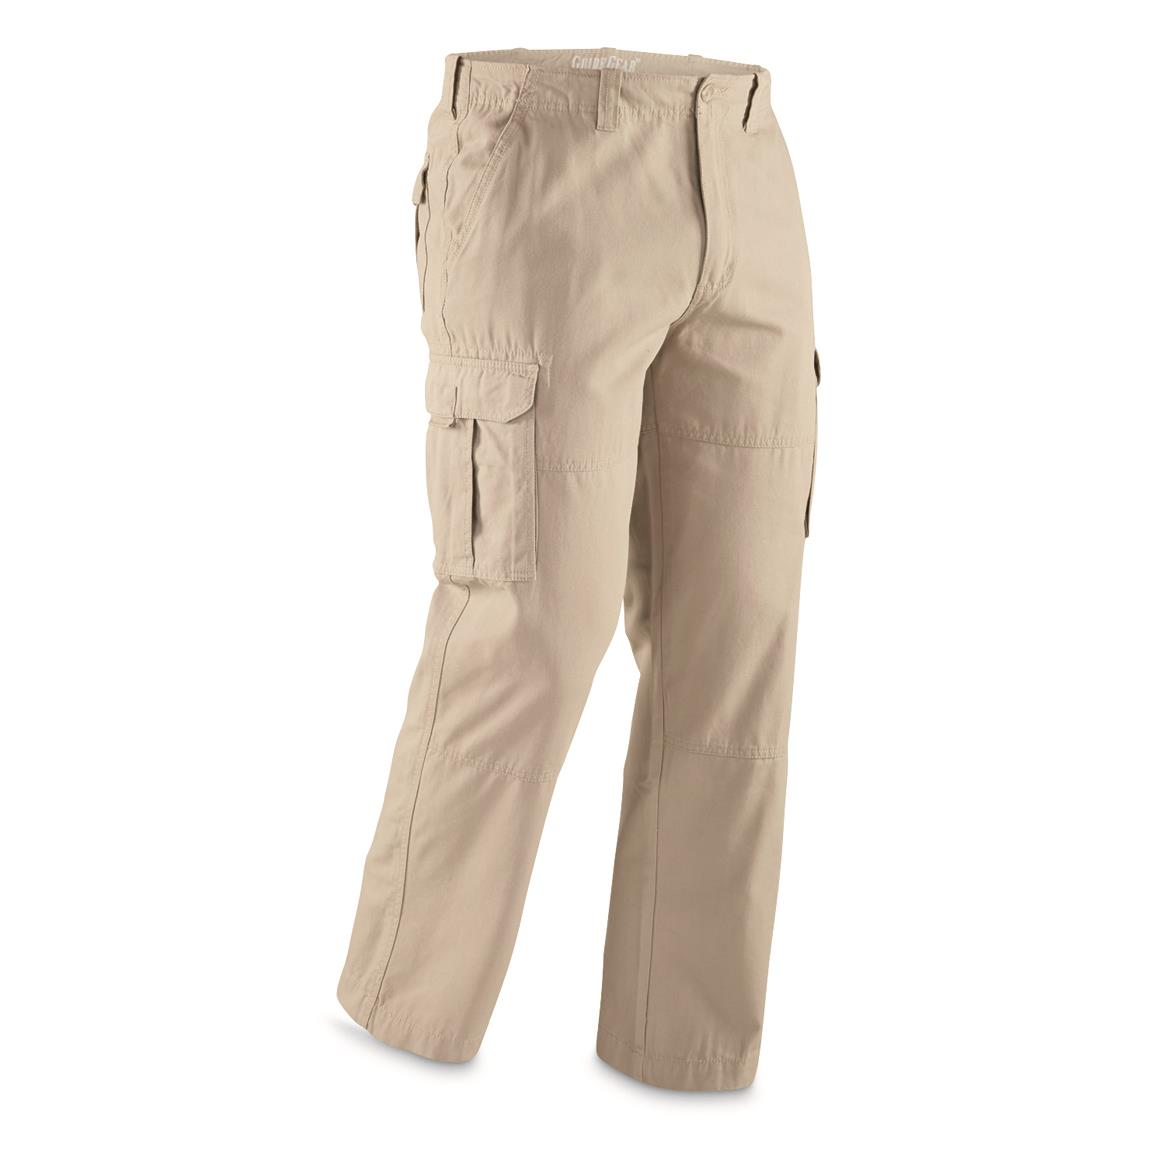 Guide Gear Men's Outdoor Cargo Pants, Khaki